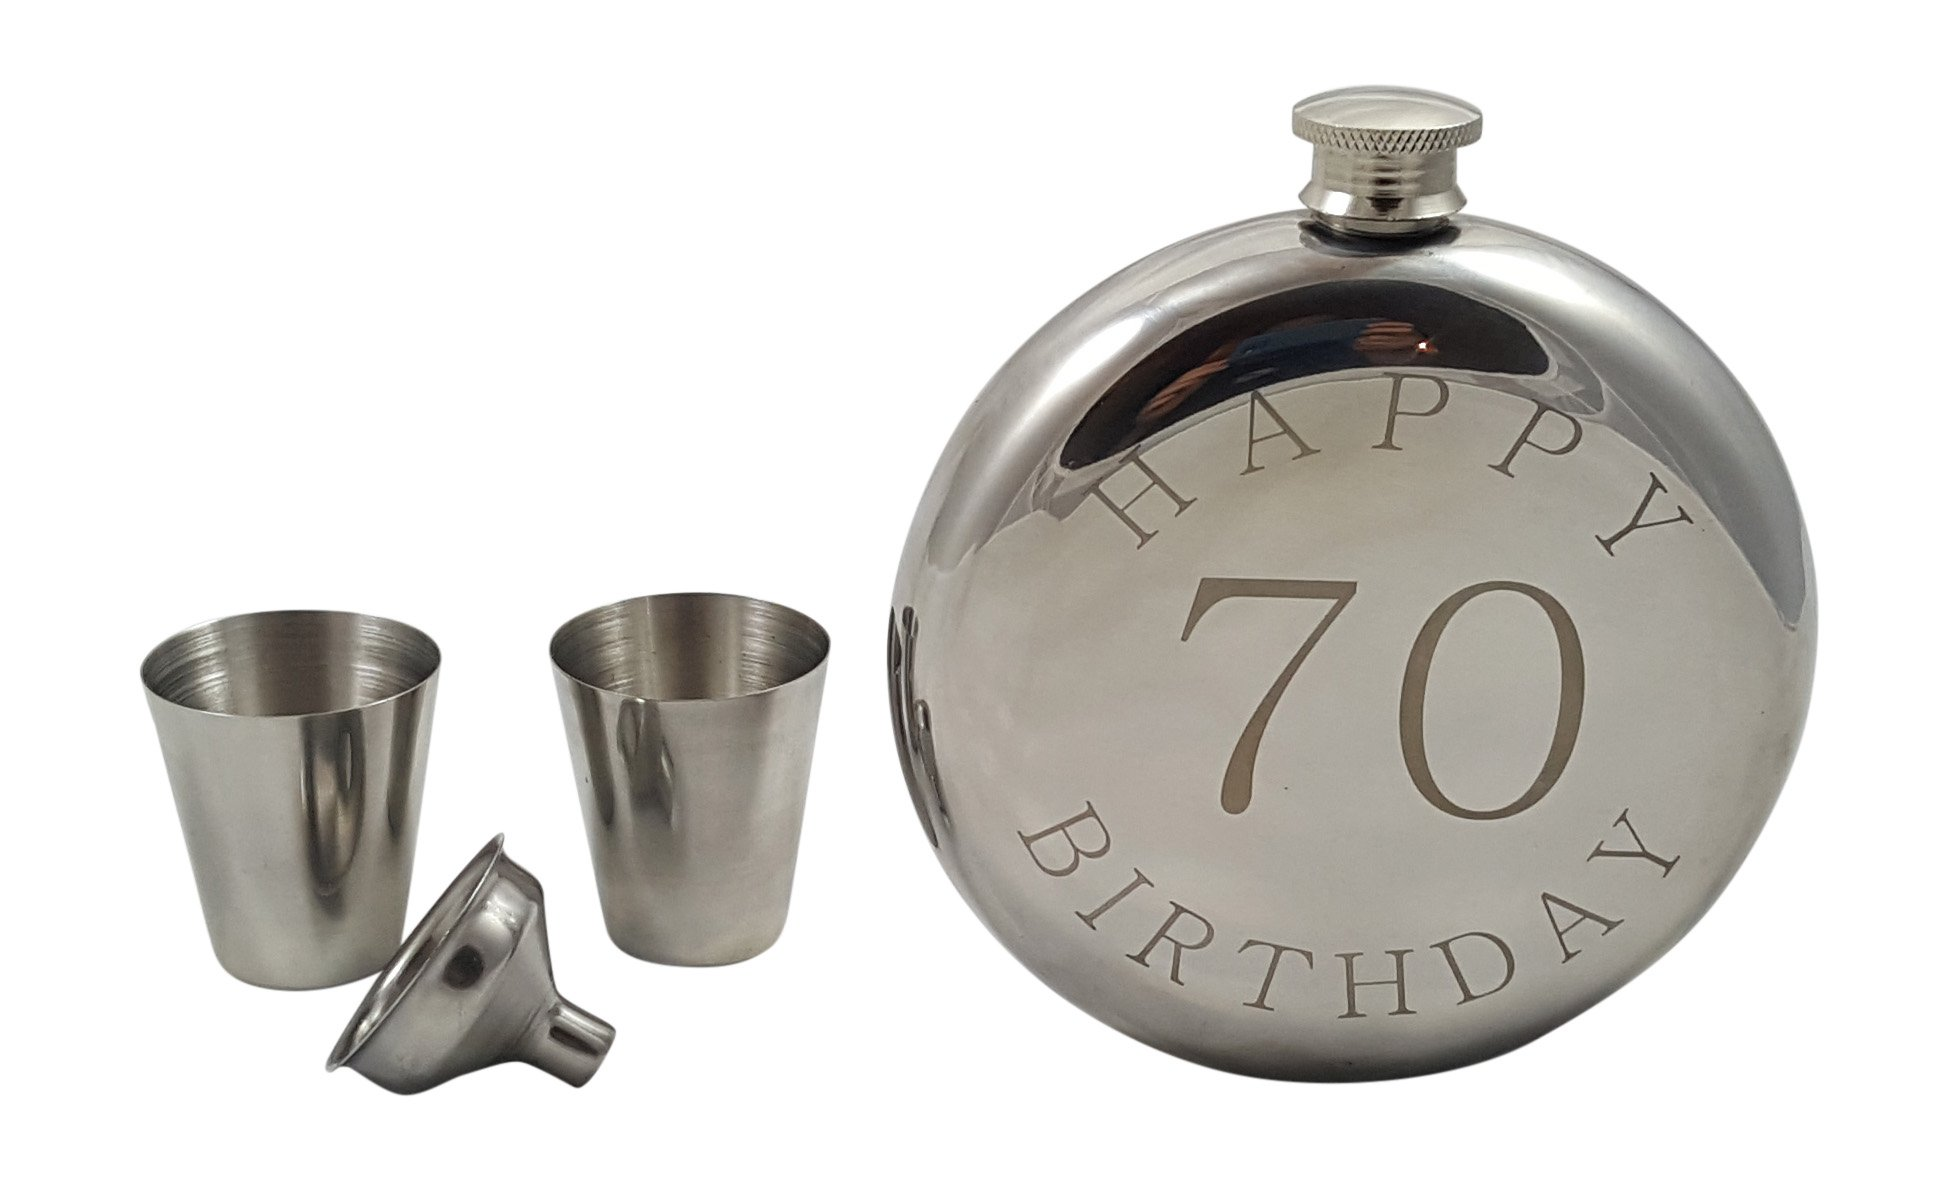 Palm City Products Happy 70th Birthday Flask Gift Set by Palm City Products (Image #2)